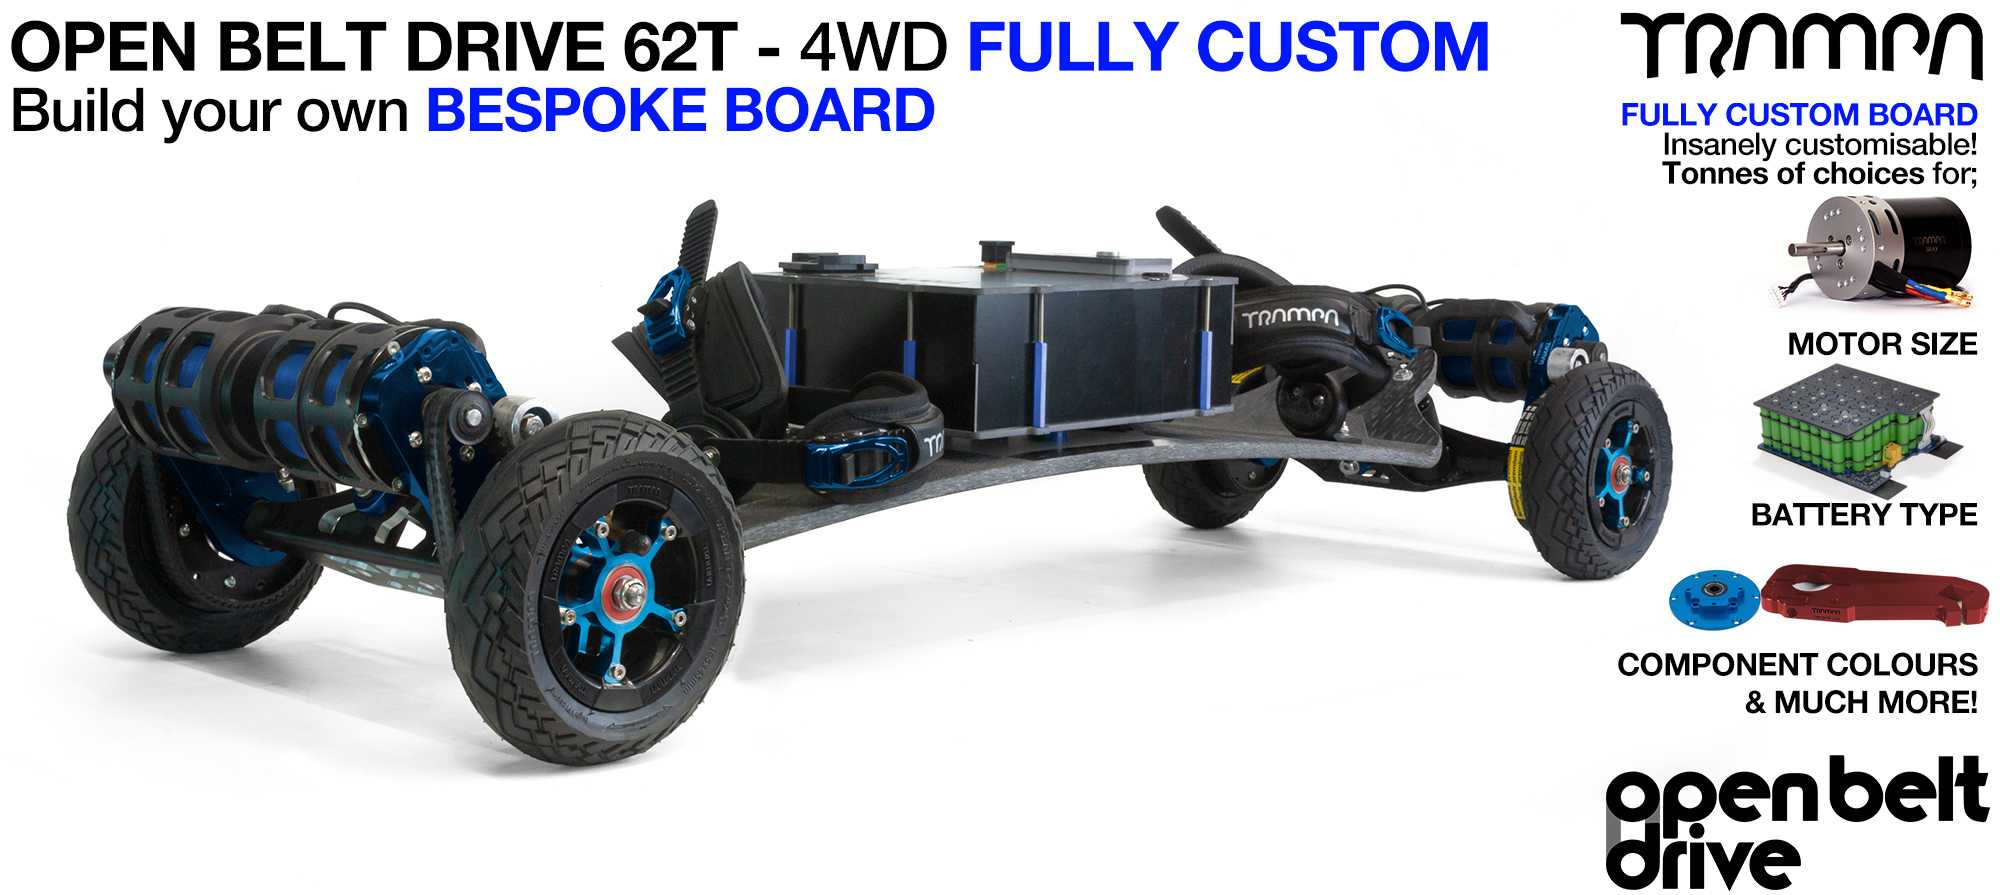 4WD 66T Open Belt Drive TRAMPA Electric Mountainboard with 6 Inch URBAN TREADs Wheels & 62 Tooth Pulleys - CUSTOM